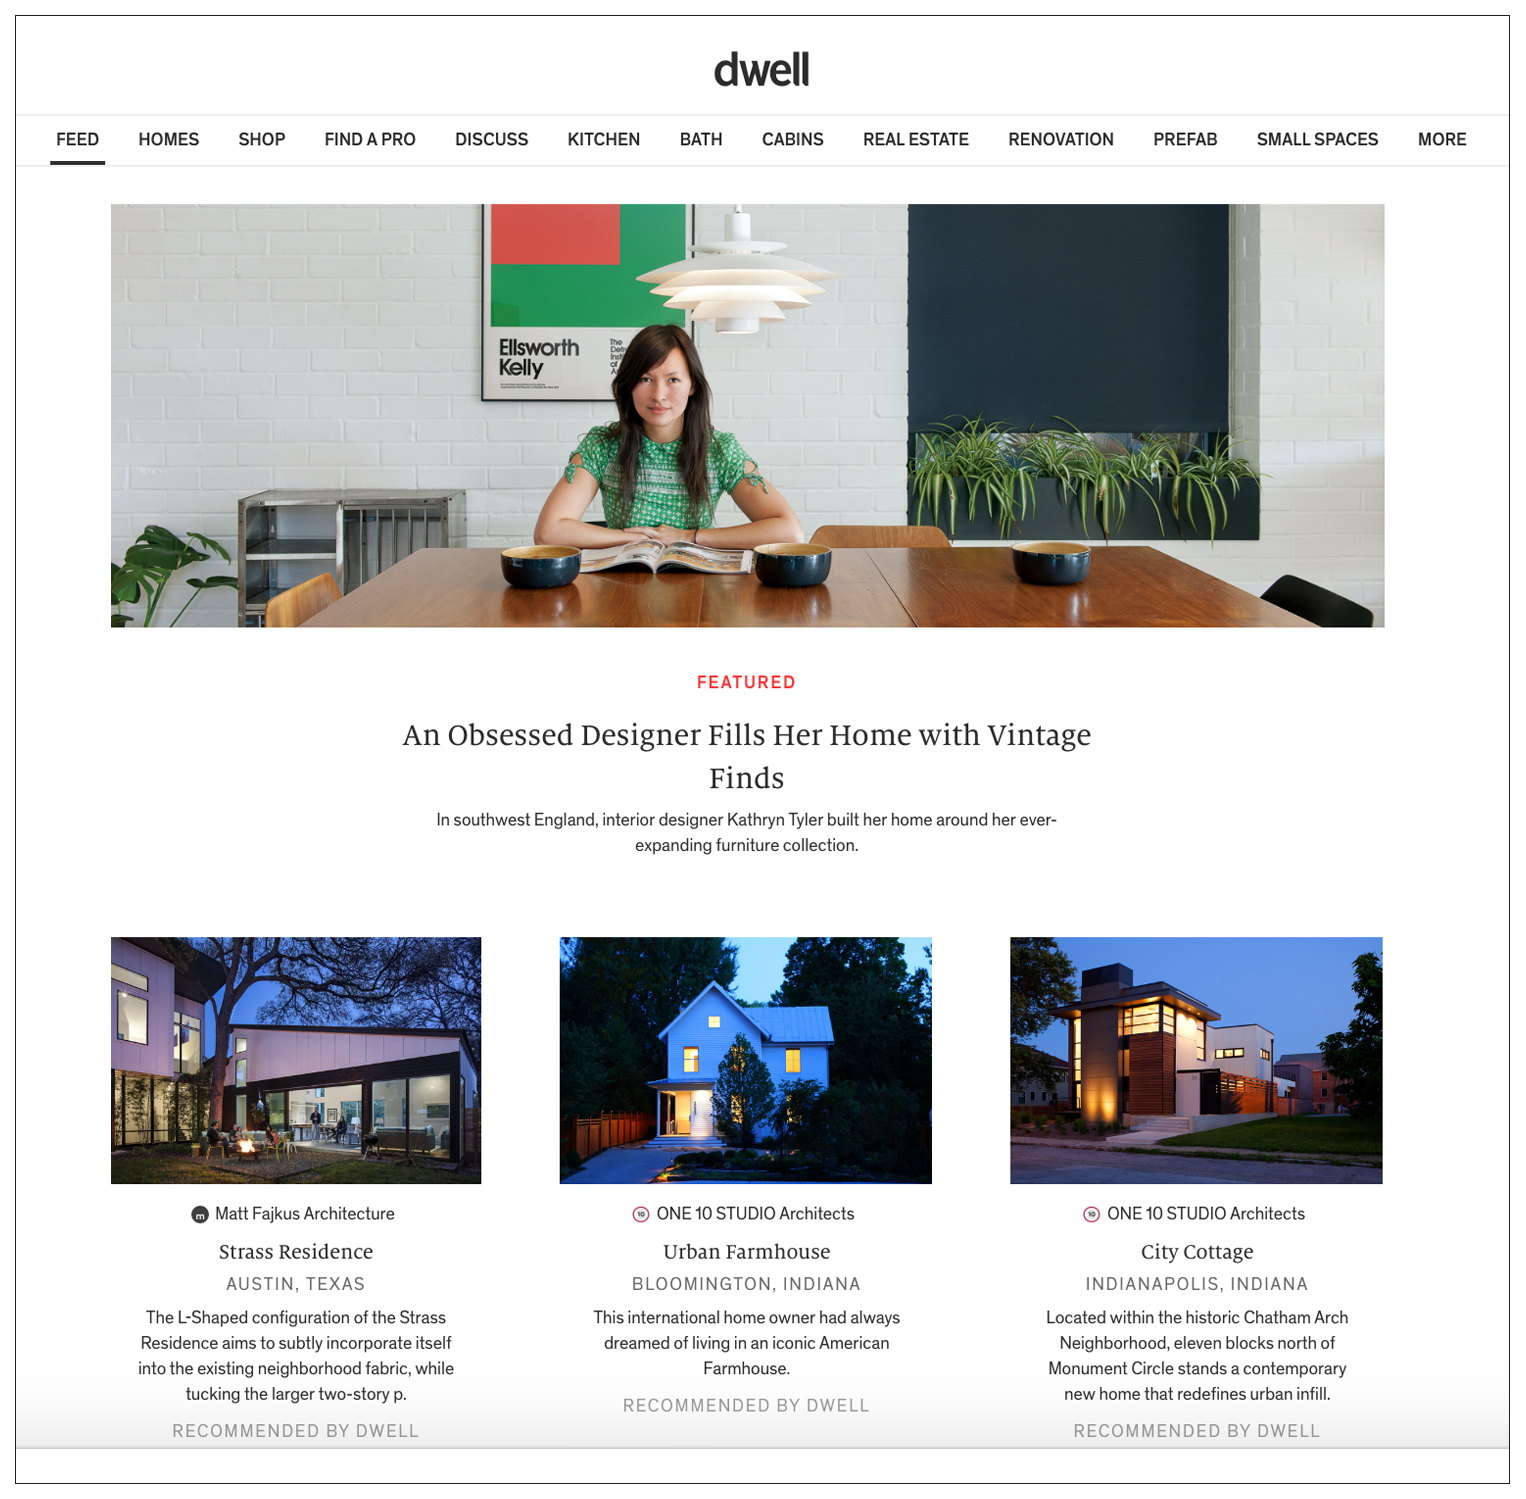 2017-02_Dwell_Strass Residence_with border.jpg